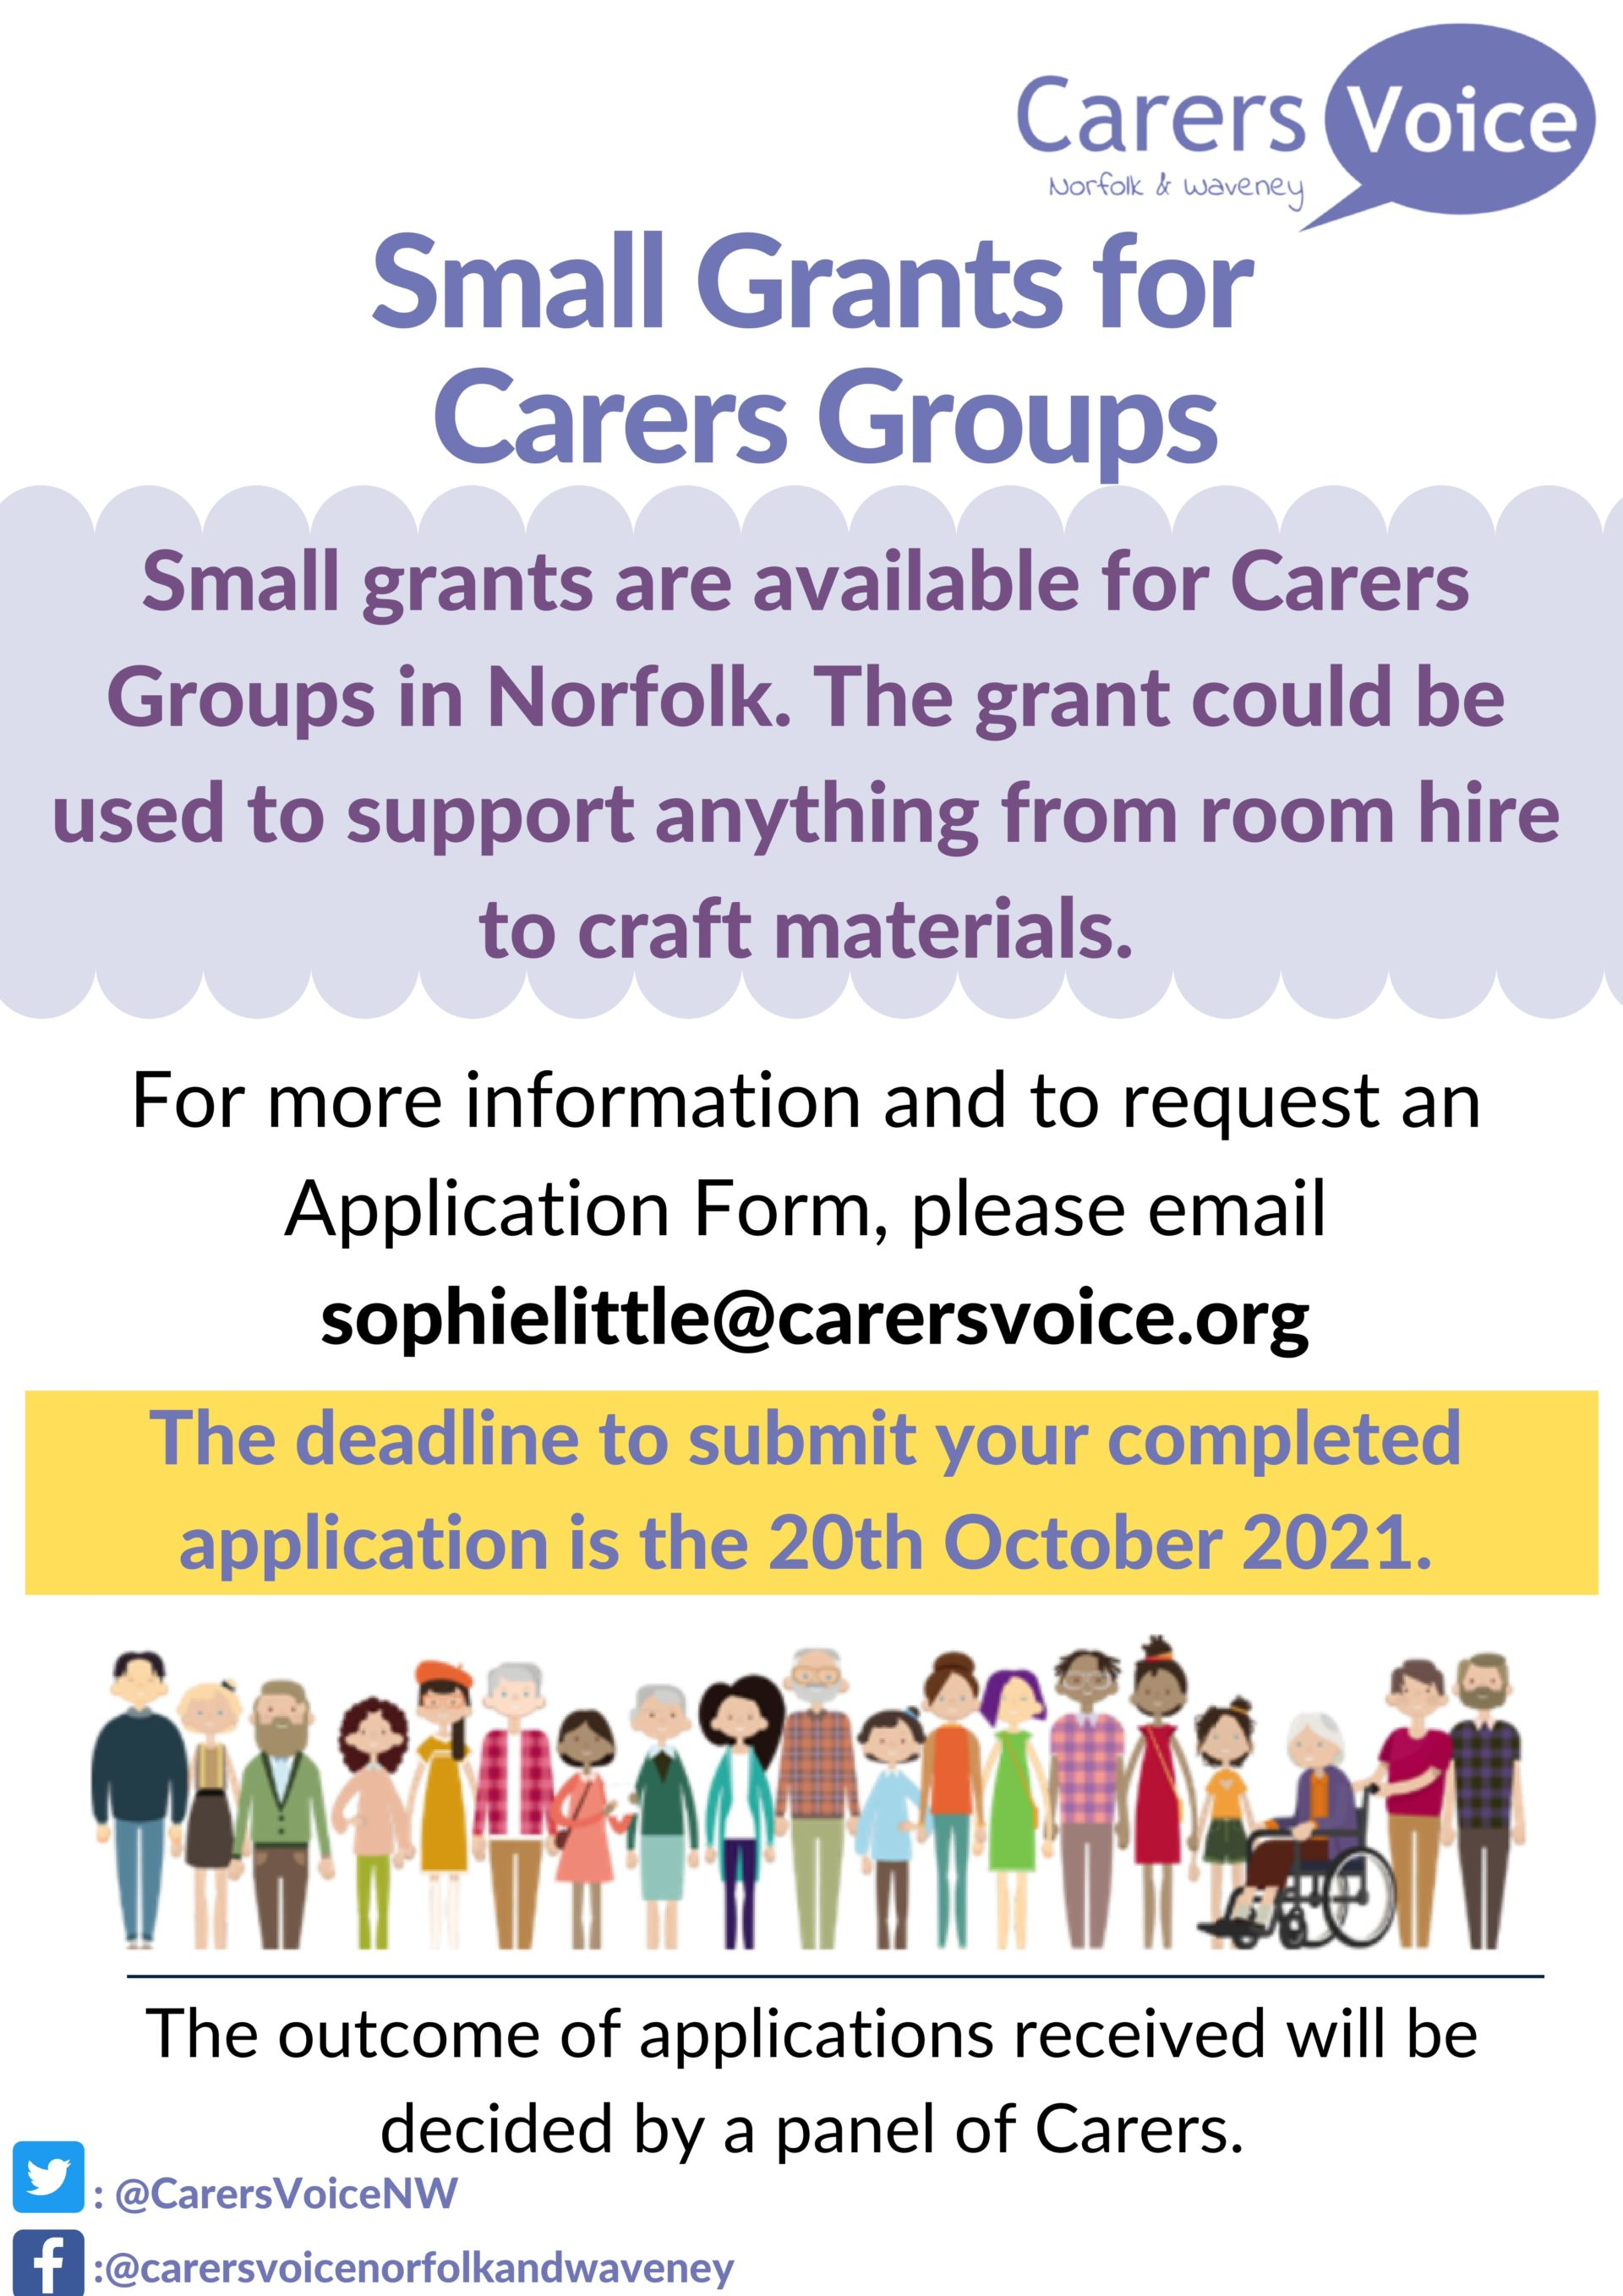 Small Group Grants for Carers